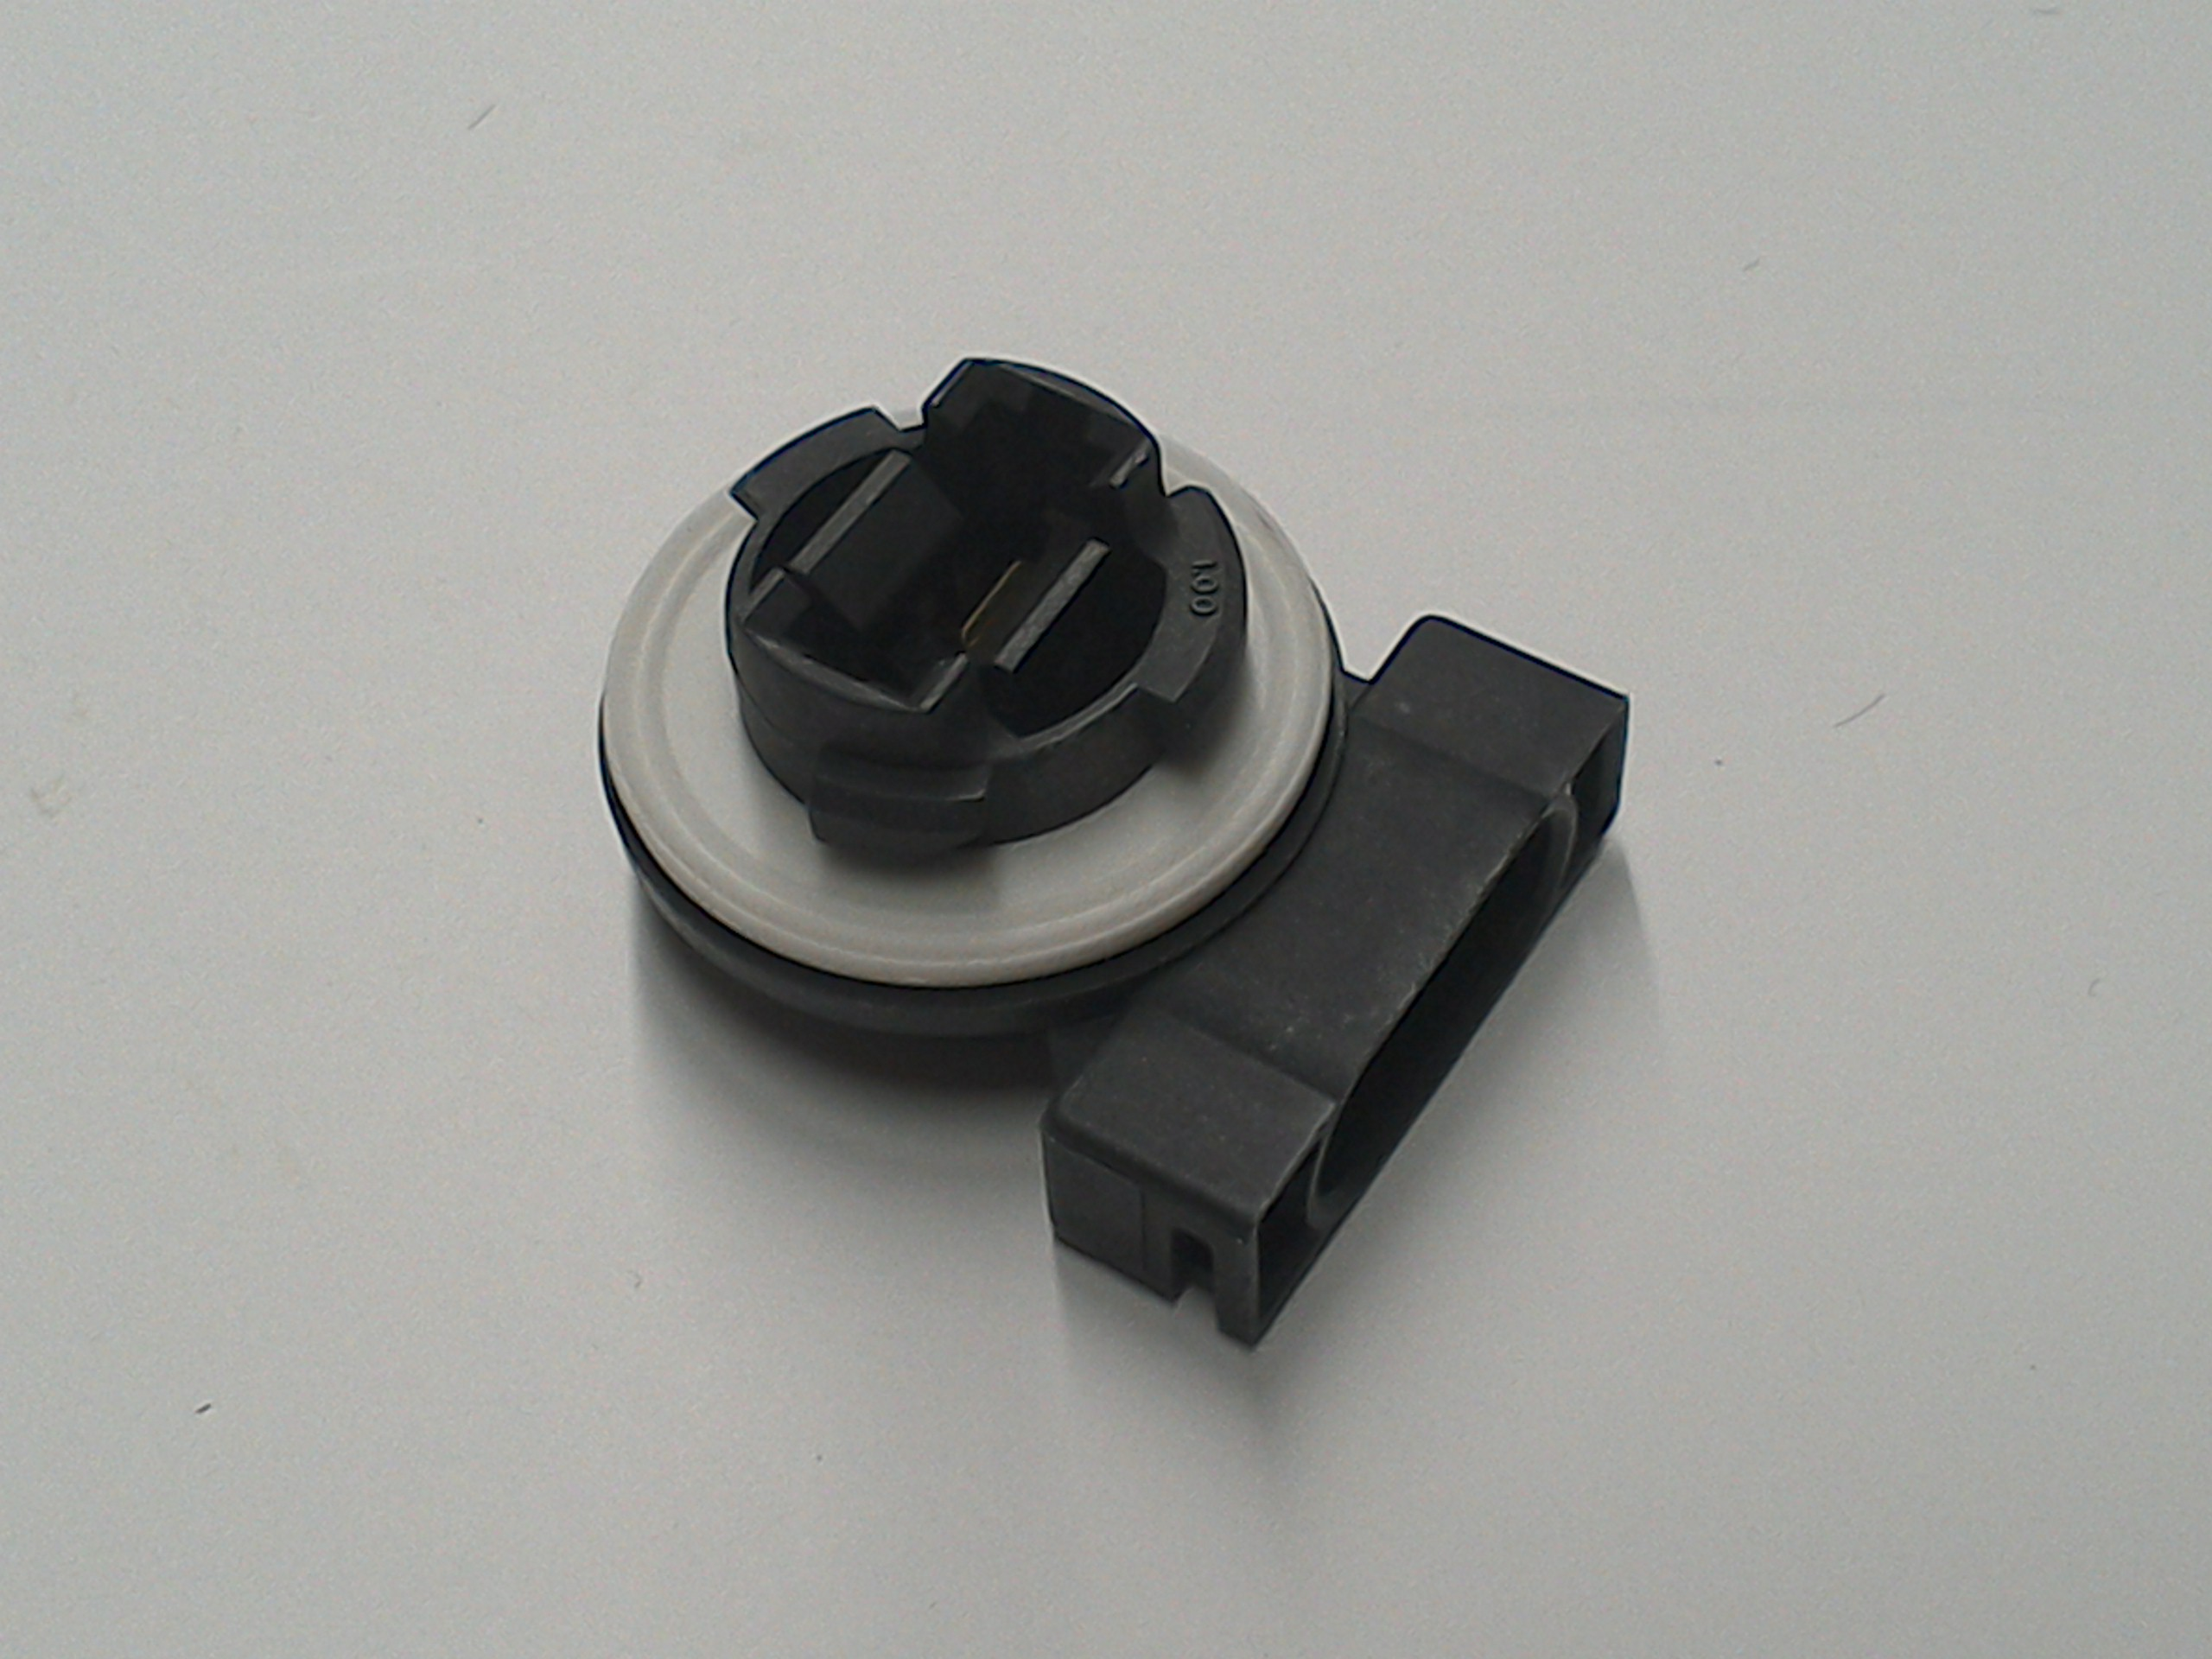 Dodge Ram 1500 Socket  Used For  Park And Turn Signal  Used For  Park  Turn  And Side